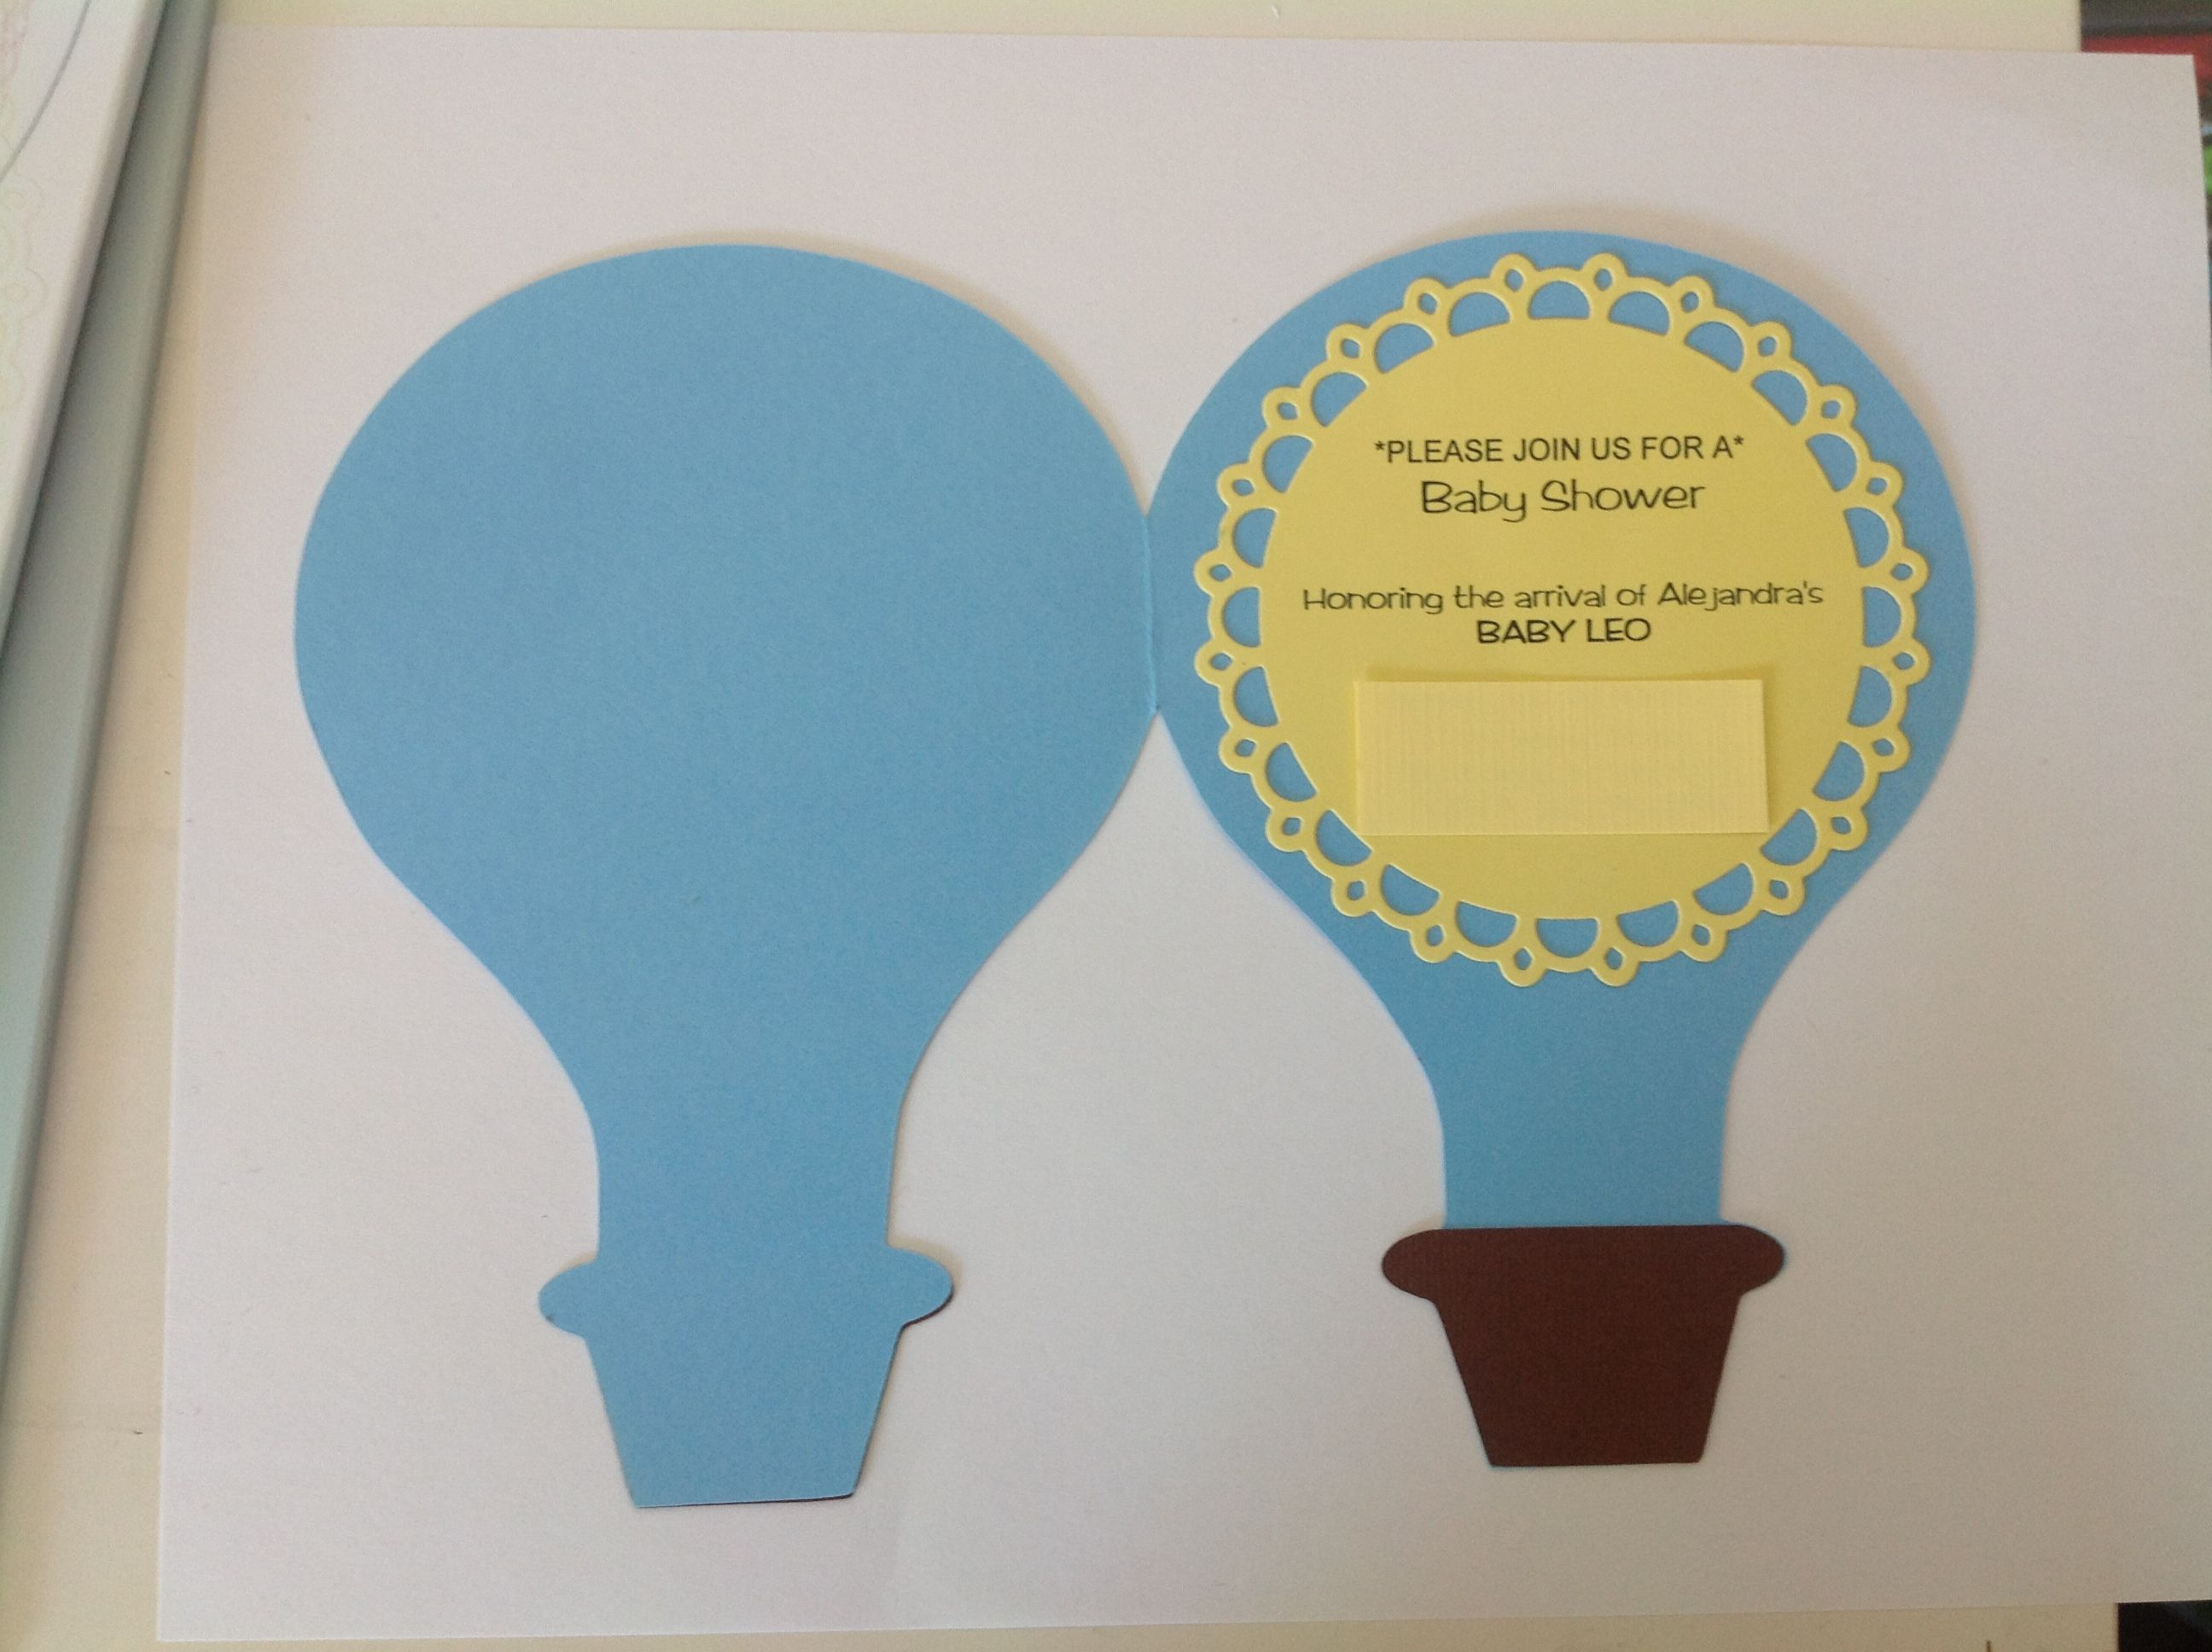 Baby shower hot air ballon theme Invitations. Inside